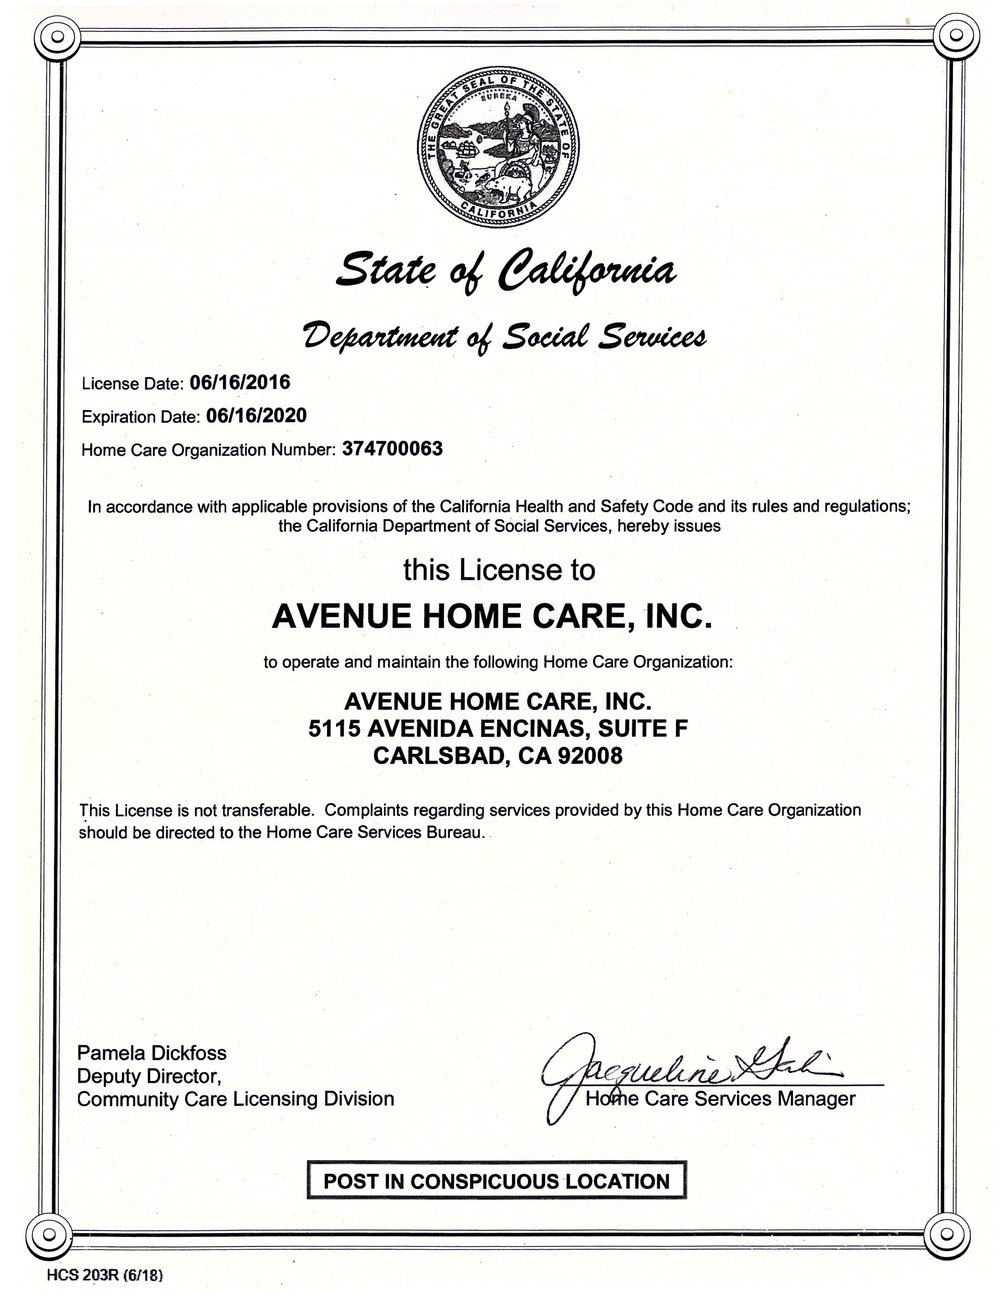 AHC State License 01 24 19.jpg